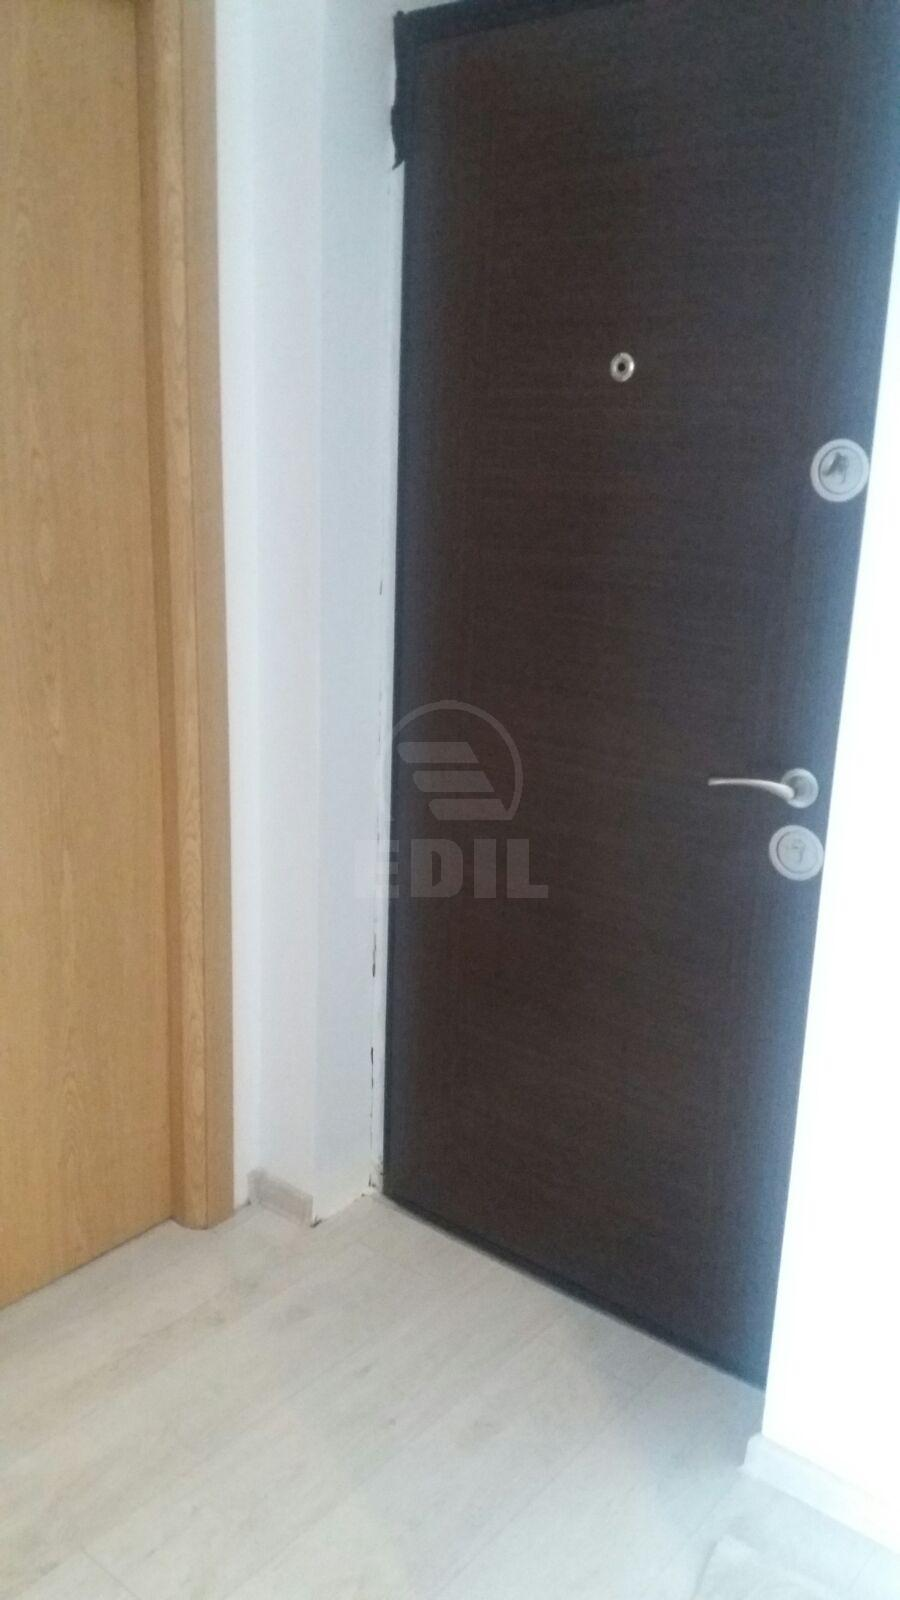 Apartment for rent 2 rooms, APCJ279074-10